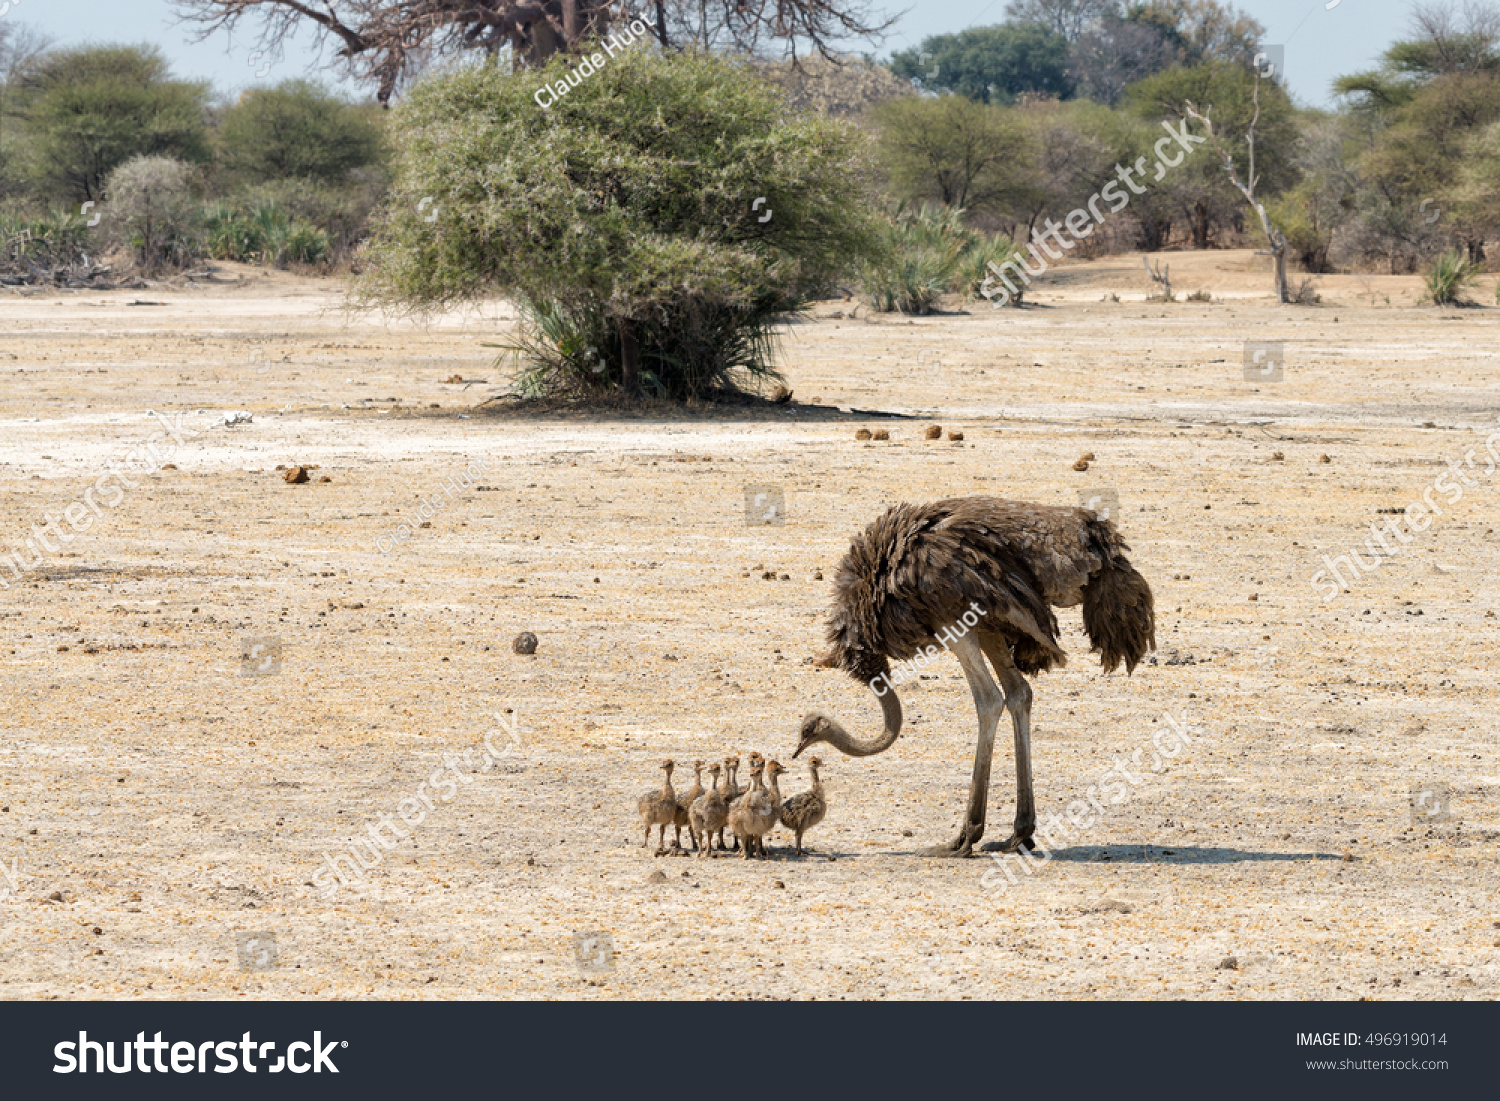 Female ostrich (Struthio camelus) with many chicks in the Mahango Game Reserve within Bwabwata National Park, Caprivi Strip, Namibia.